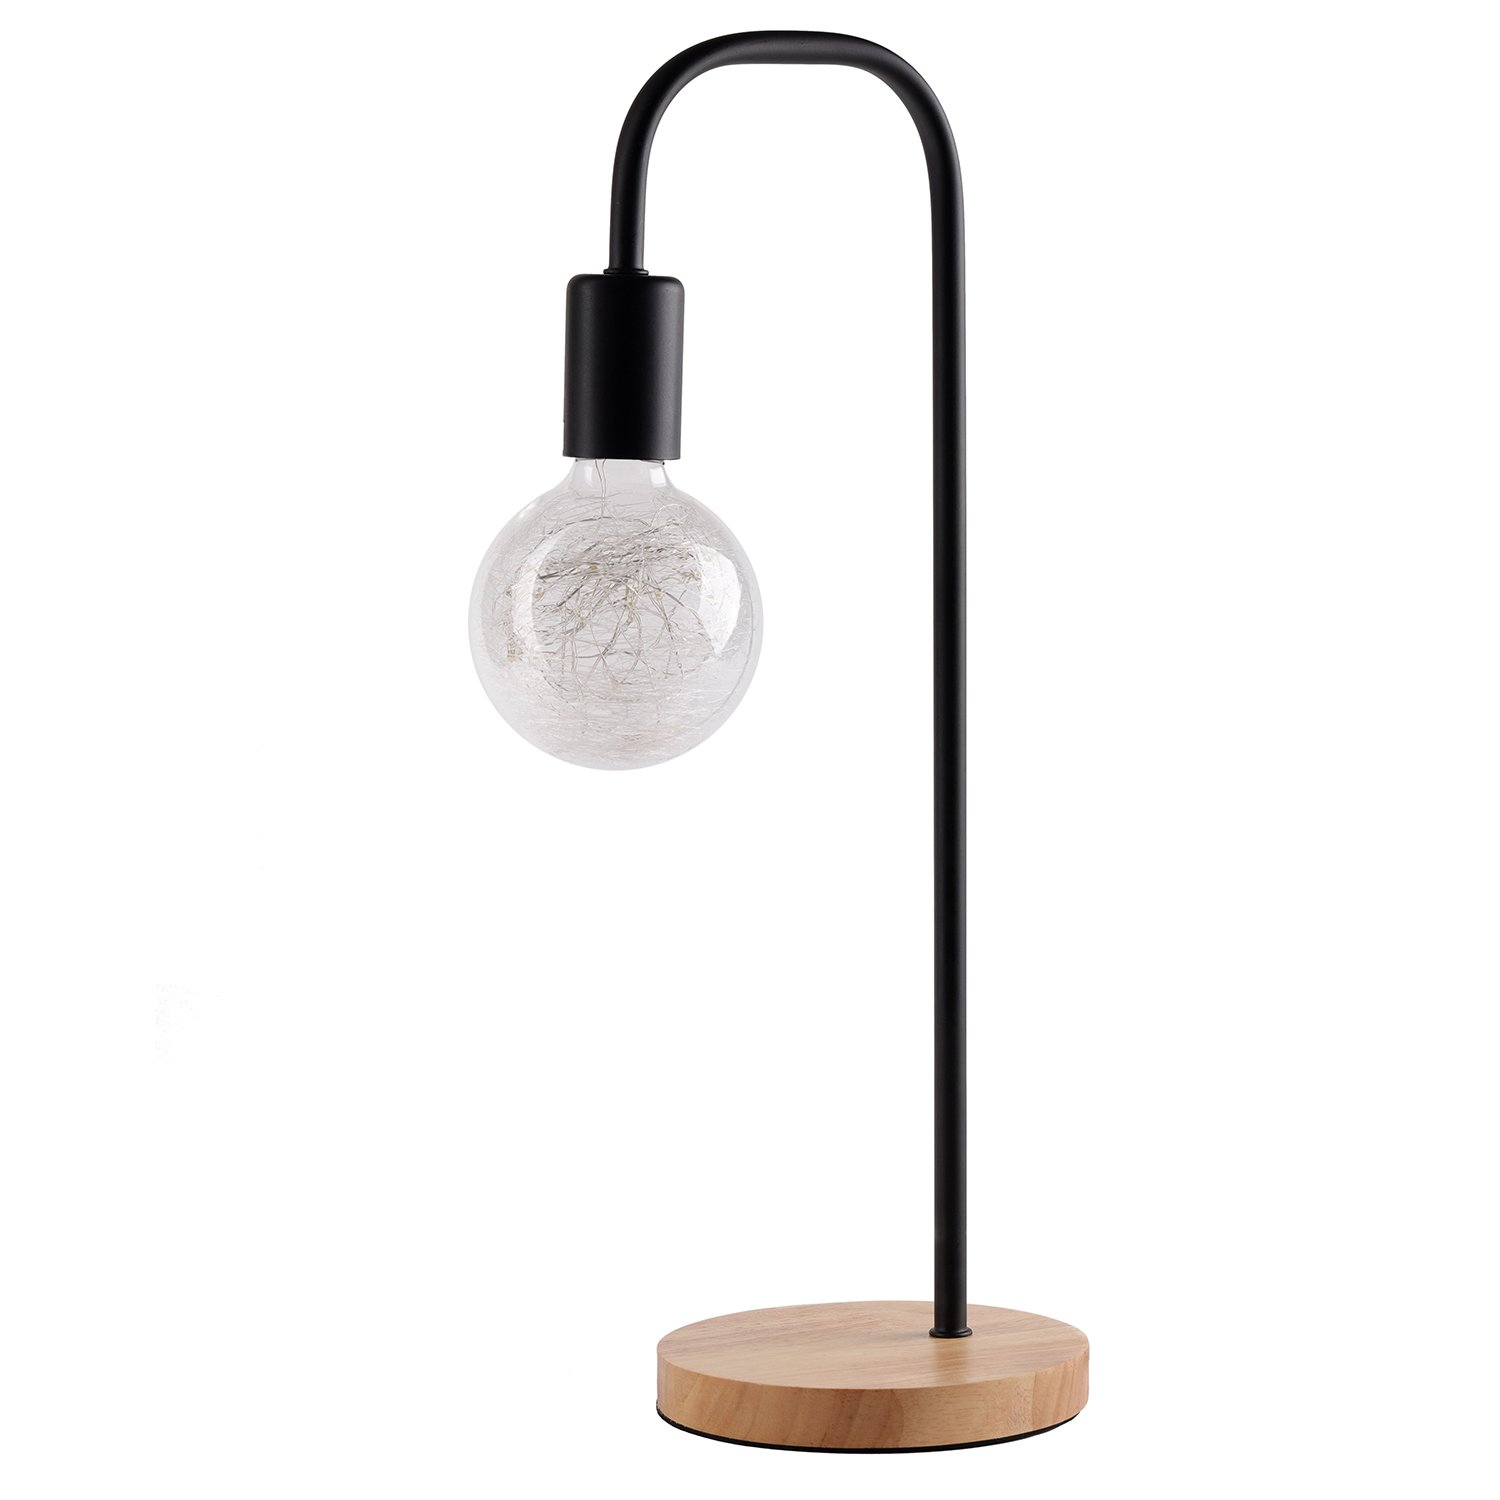 Modern Wrought Iron Night Lamp,Table lamp for Bedroom,Dinning Room,Minimalism Sytle Canvas Shade Desk Lamps - No Shade,LED Lighting,UL Listed,Wood Base